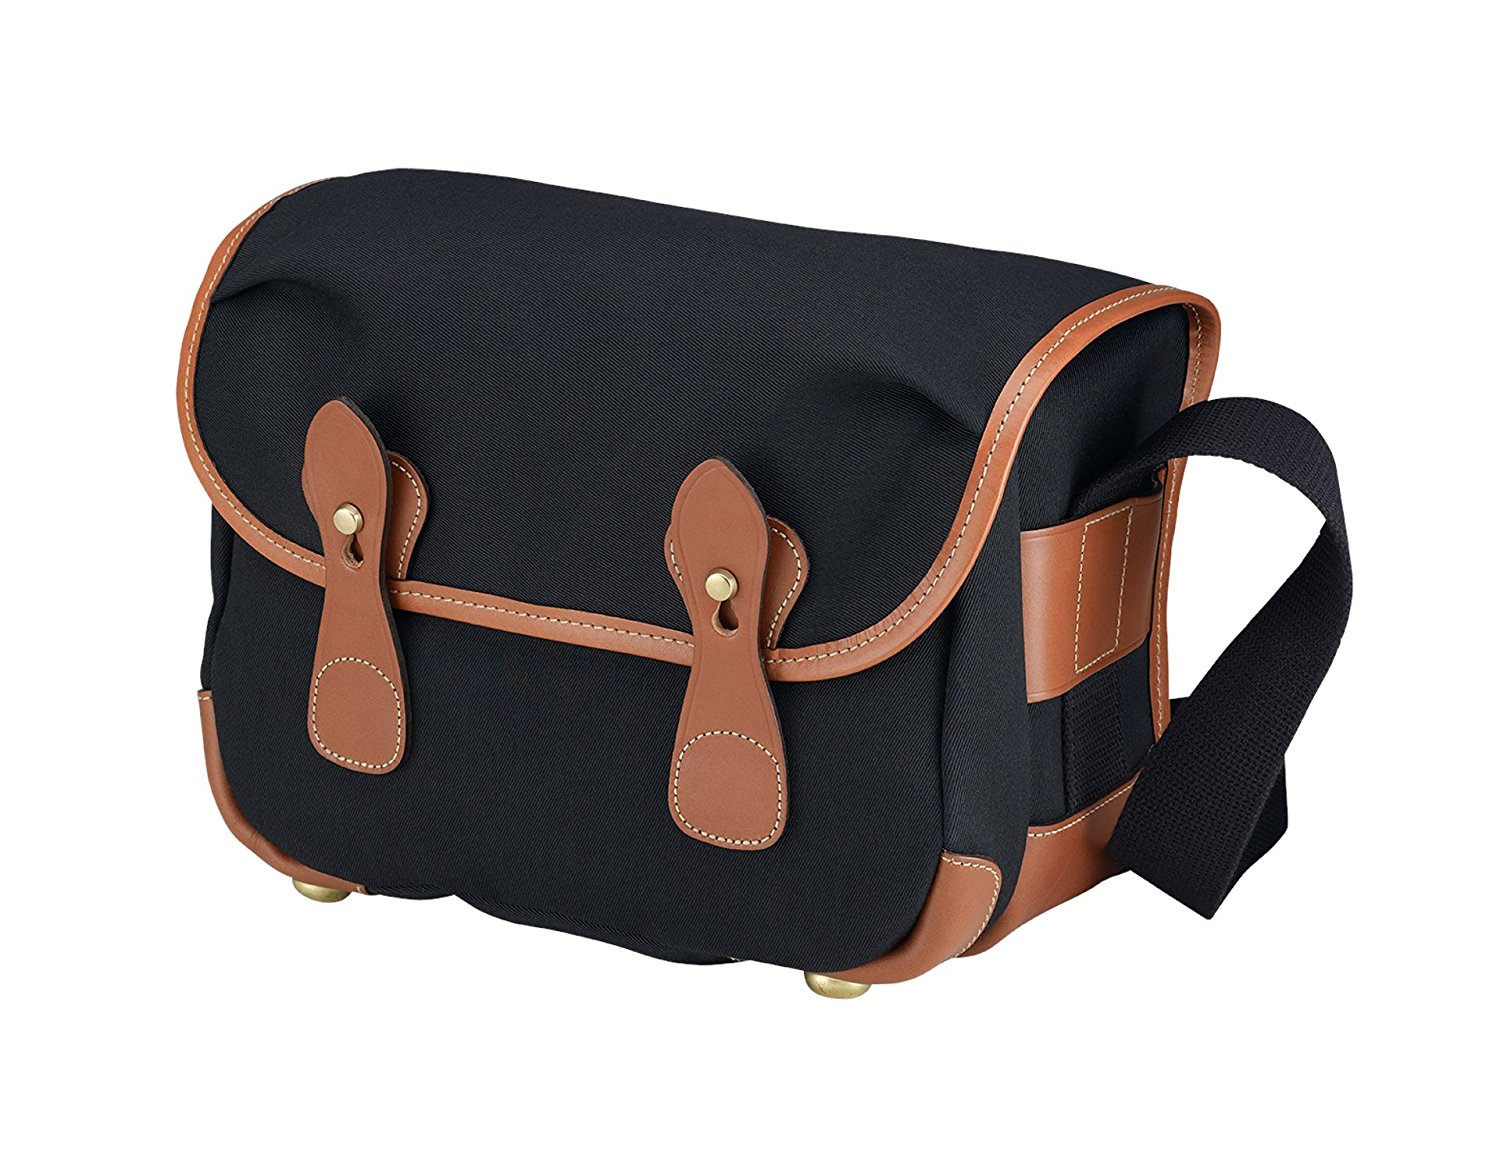 Buy Billingham Hadley Small Canvas Bag For Camera Black Tan In One Leather L2 Trim